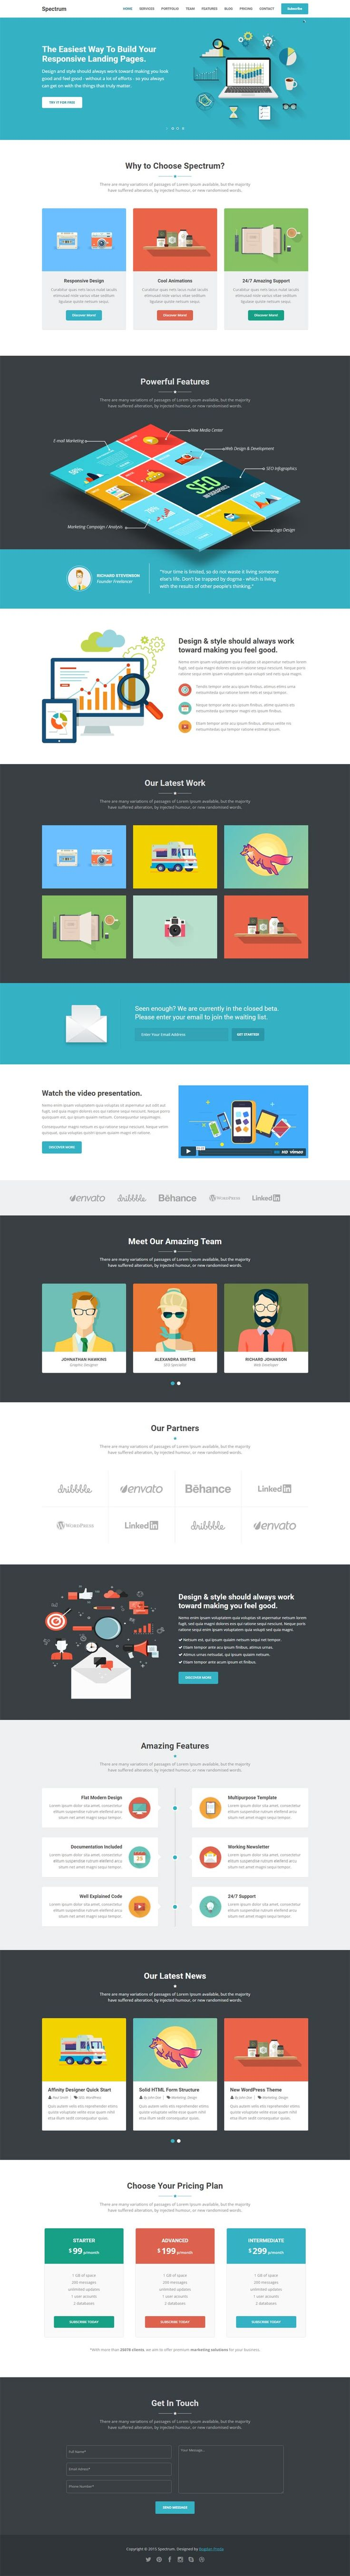 Modern, flat landing page template, best suitable to promote web apps, mobile apps and all kind of marketing and startup websites